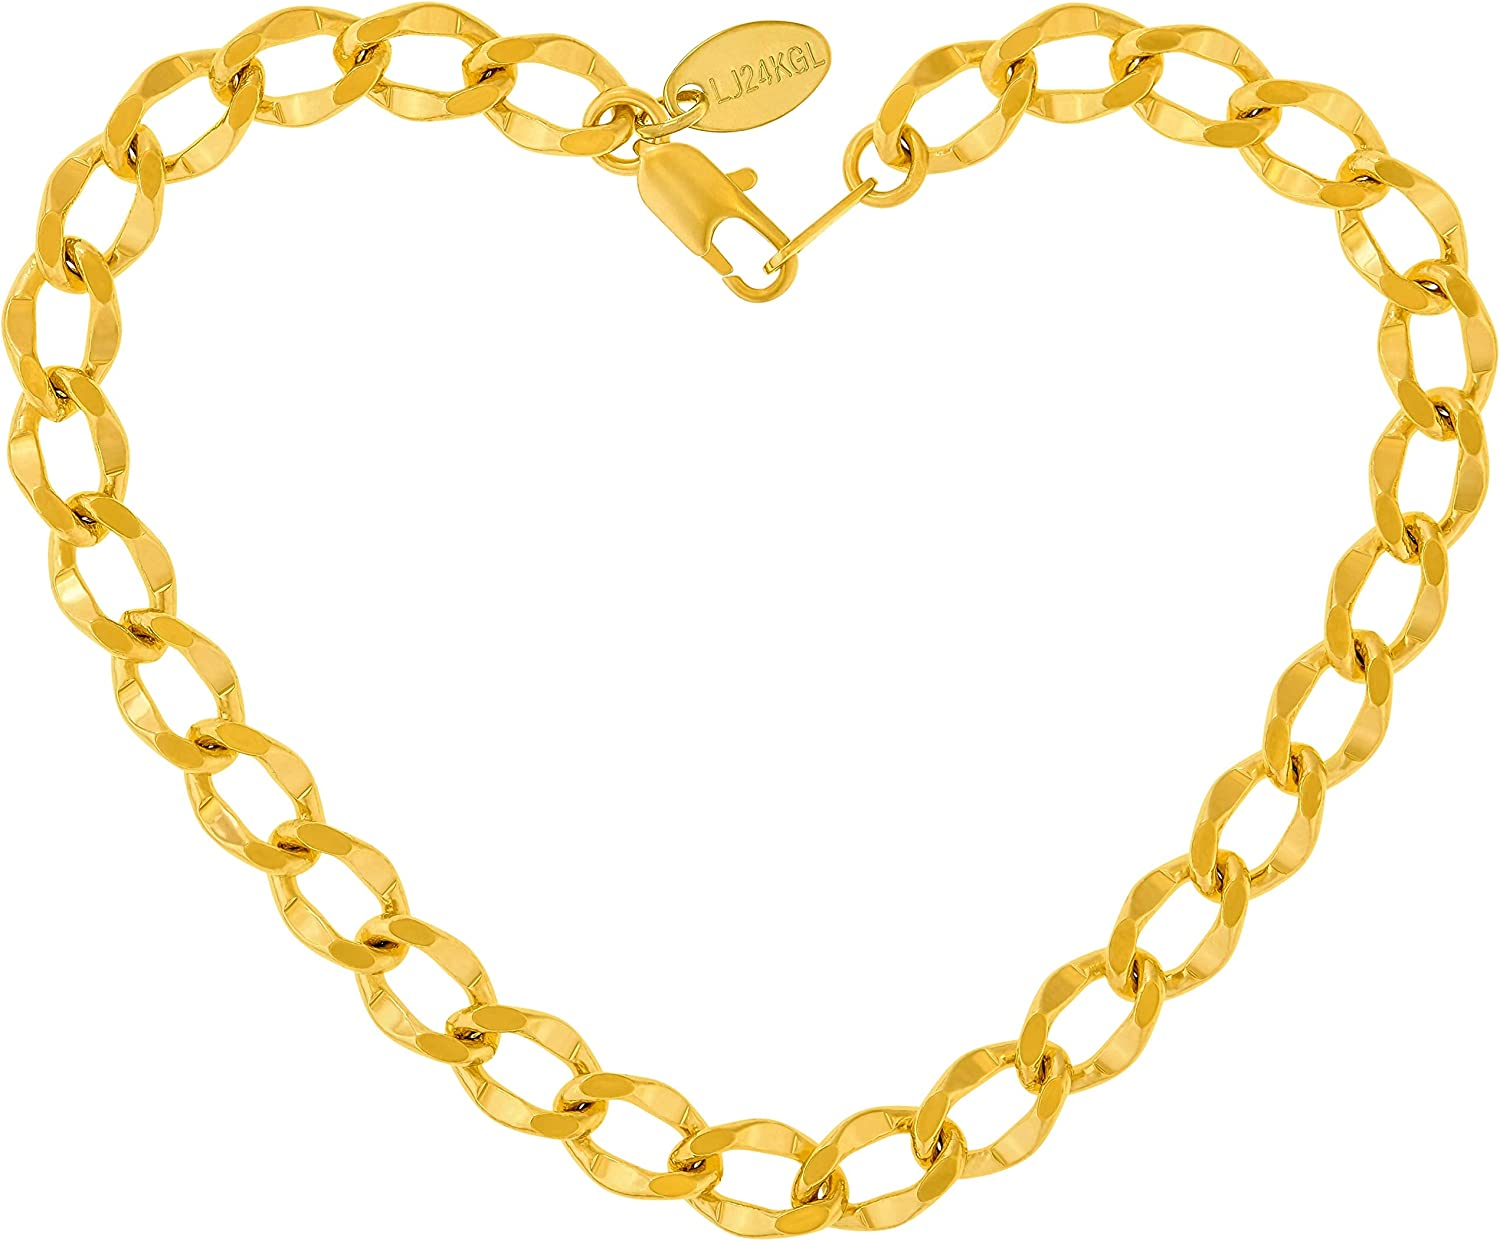 LIFETIME SEAL limited product JEWELRY Diamond Cut Curb Link Gold Anklet for Women safety 24k